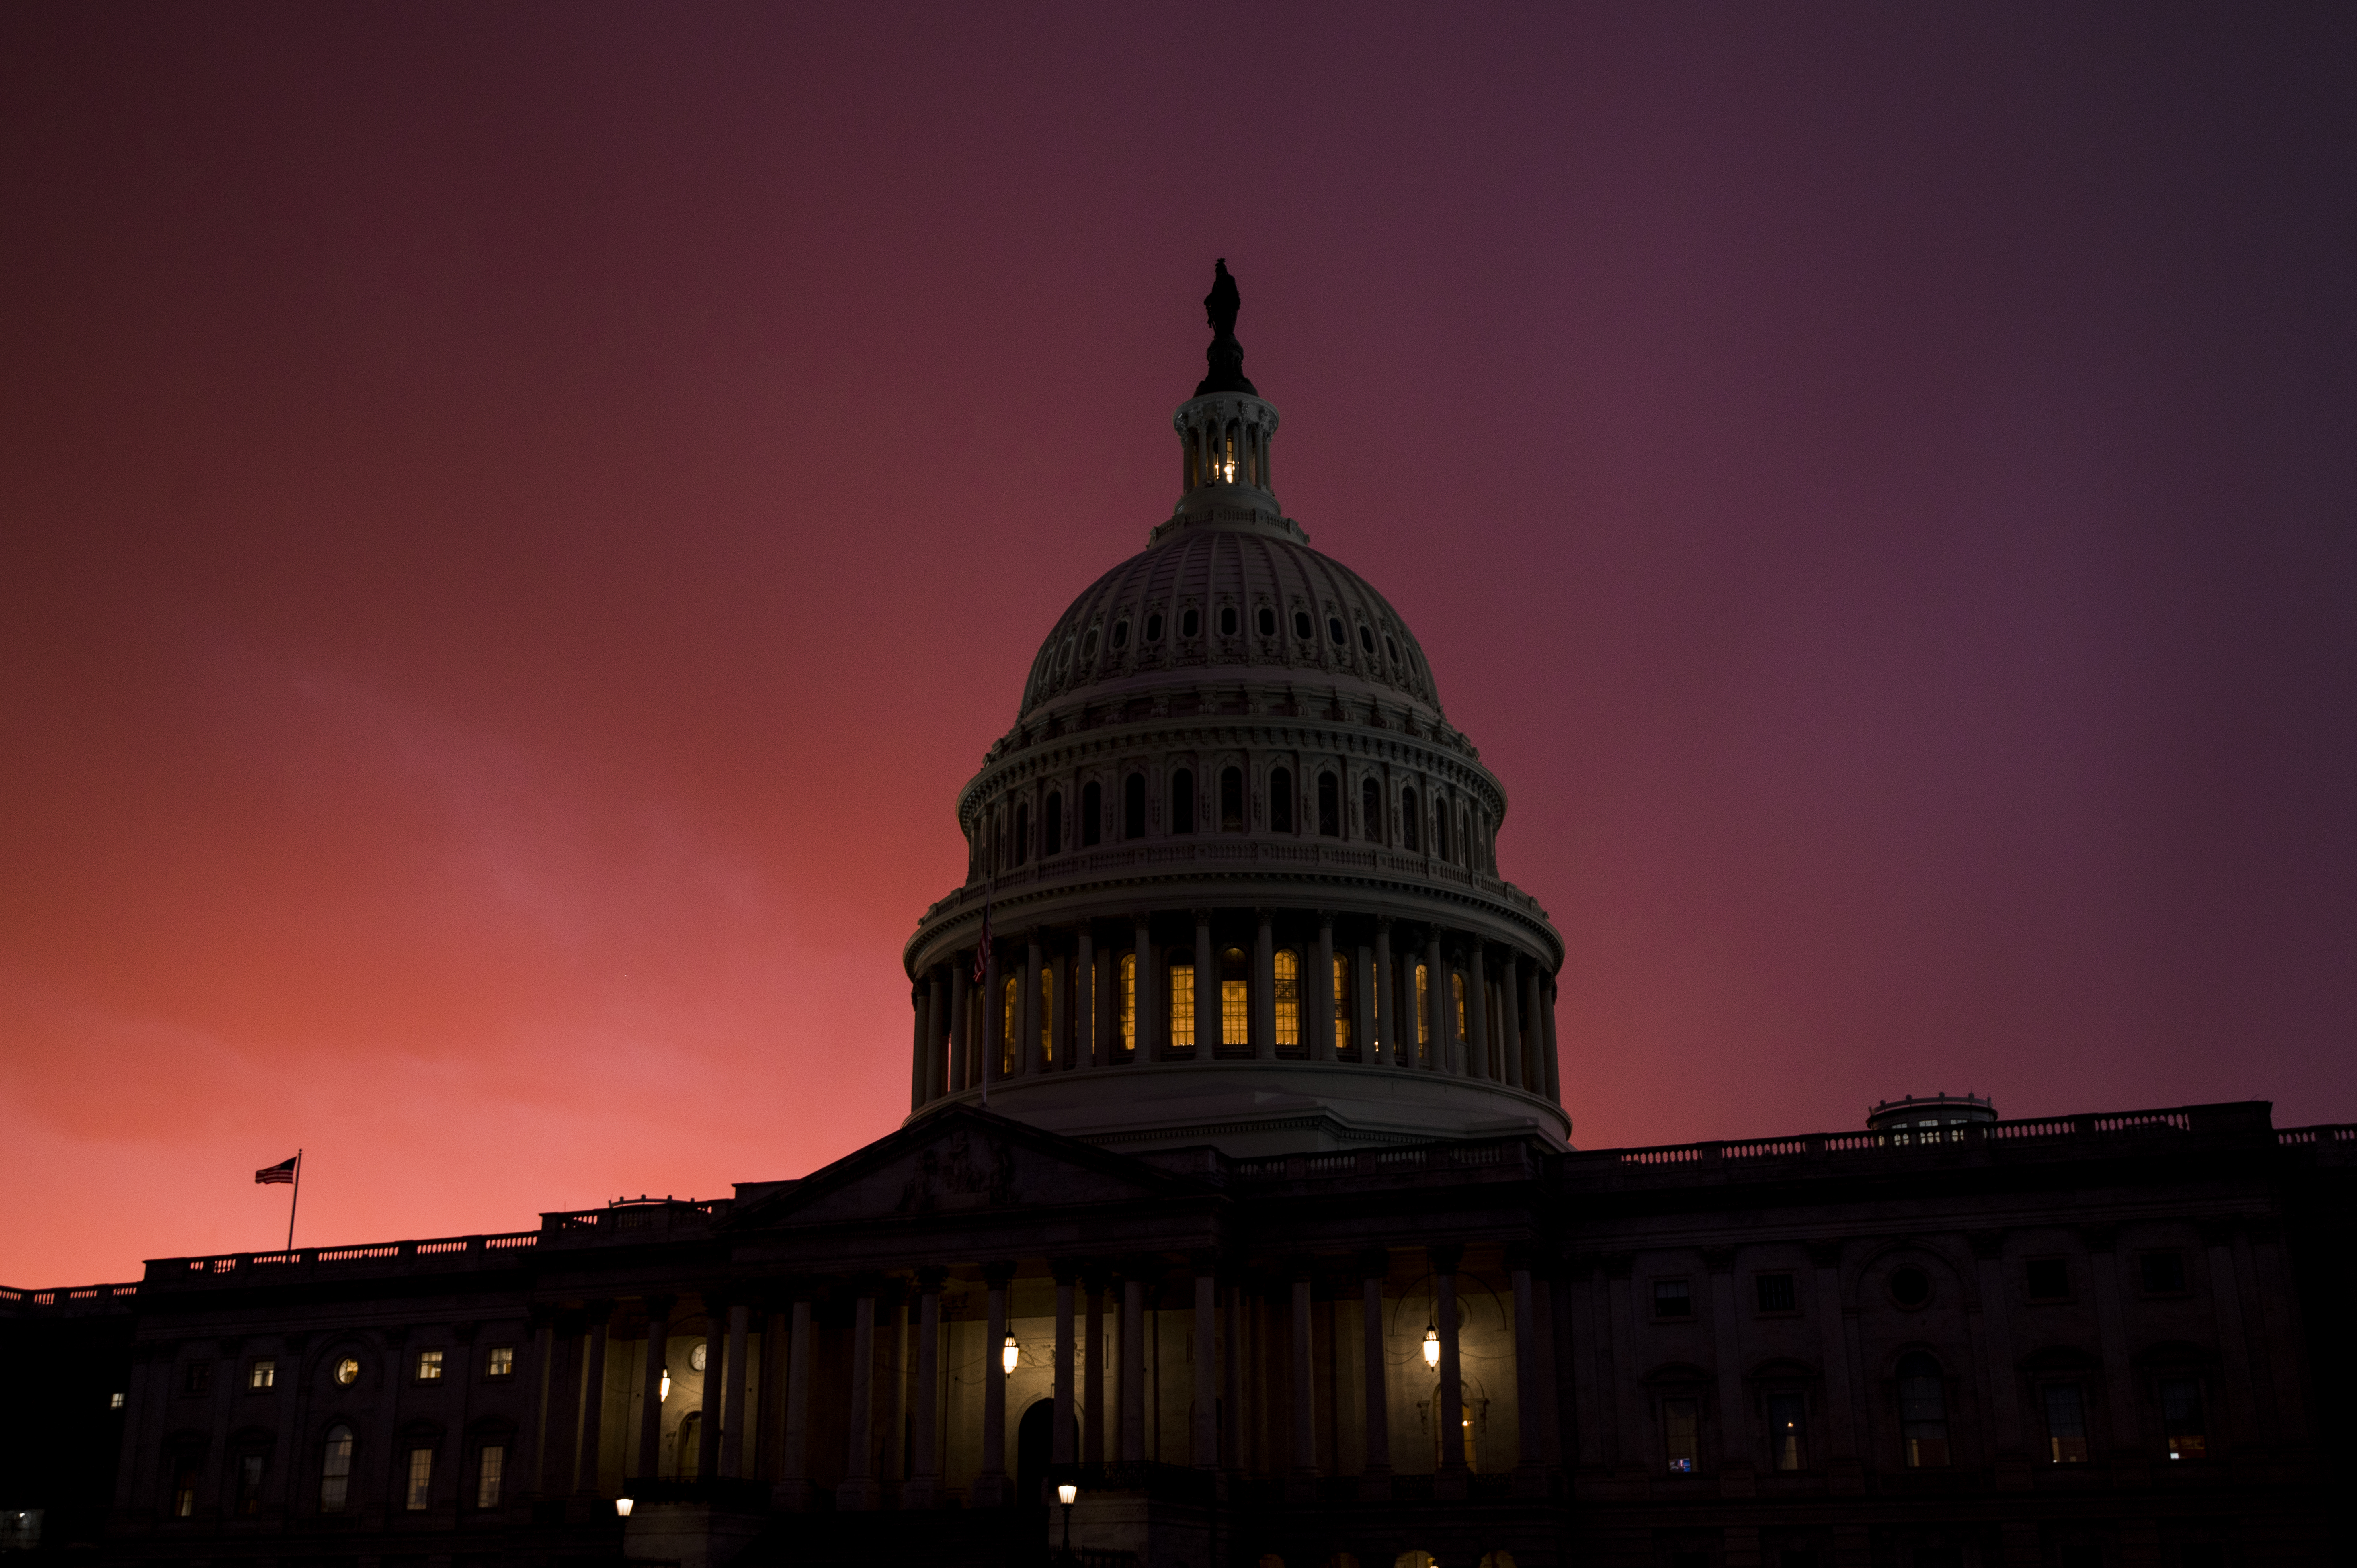 UNITED STATES - DECEMBER 4: The U.S. Capitol dome at sunset on Wednesday, Dec. 4, 2019. (Photo By Bill Clark/CQ Roll Call)